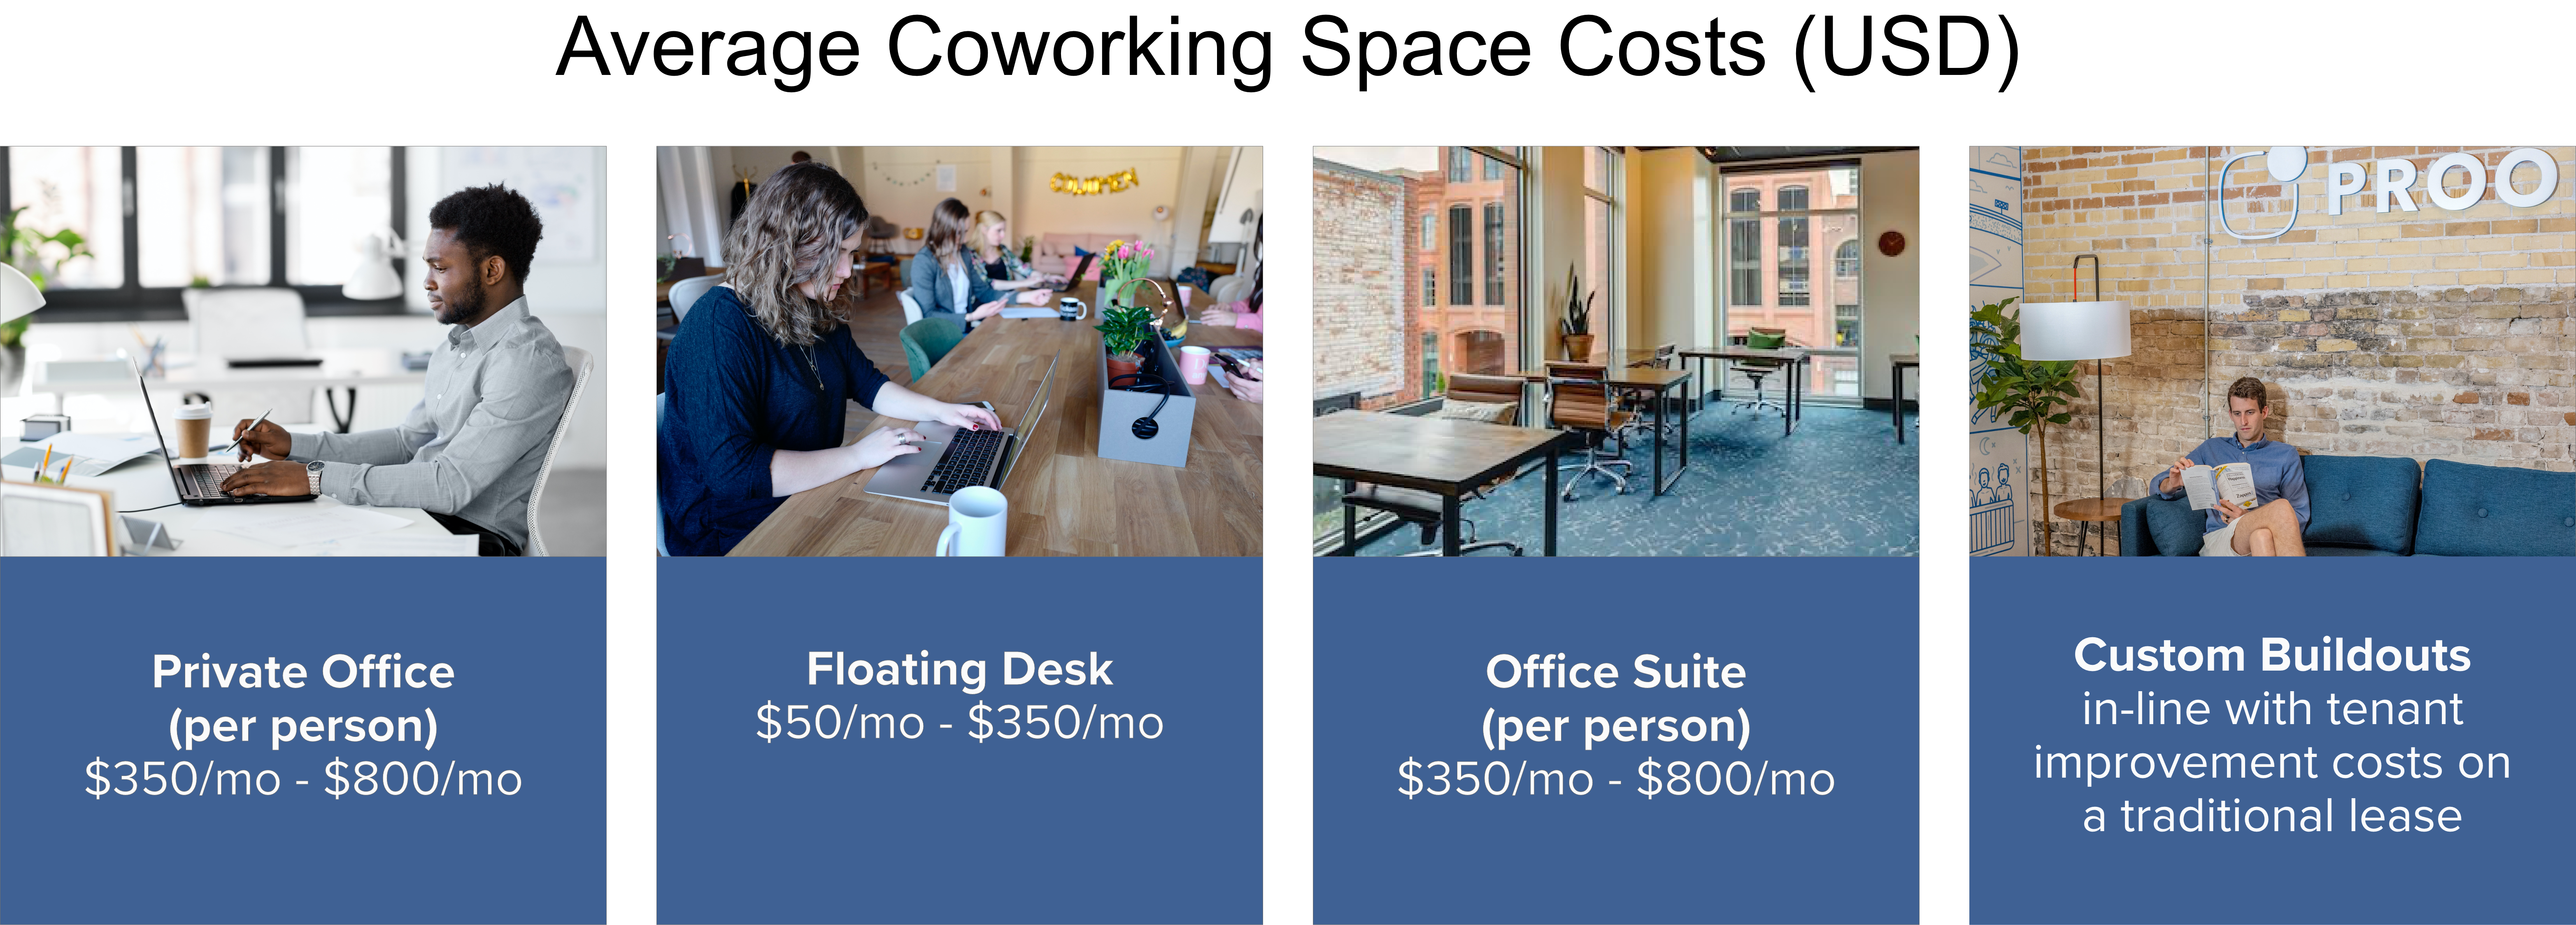 Avg Coworking Space Costs.1